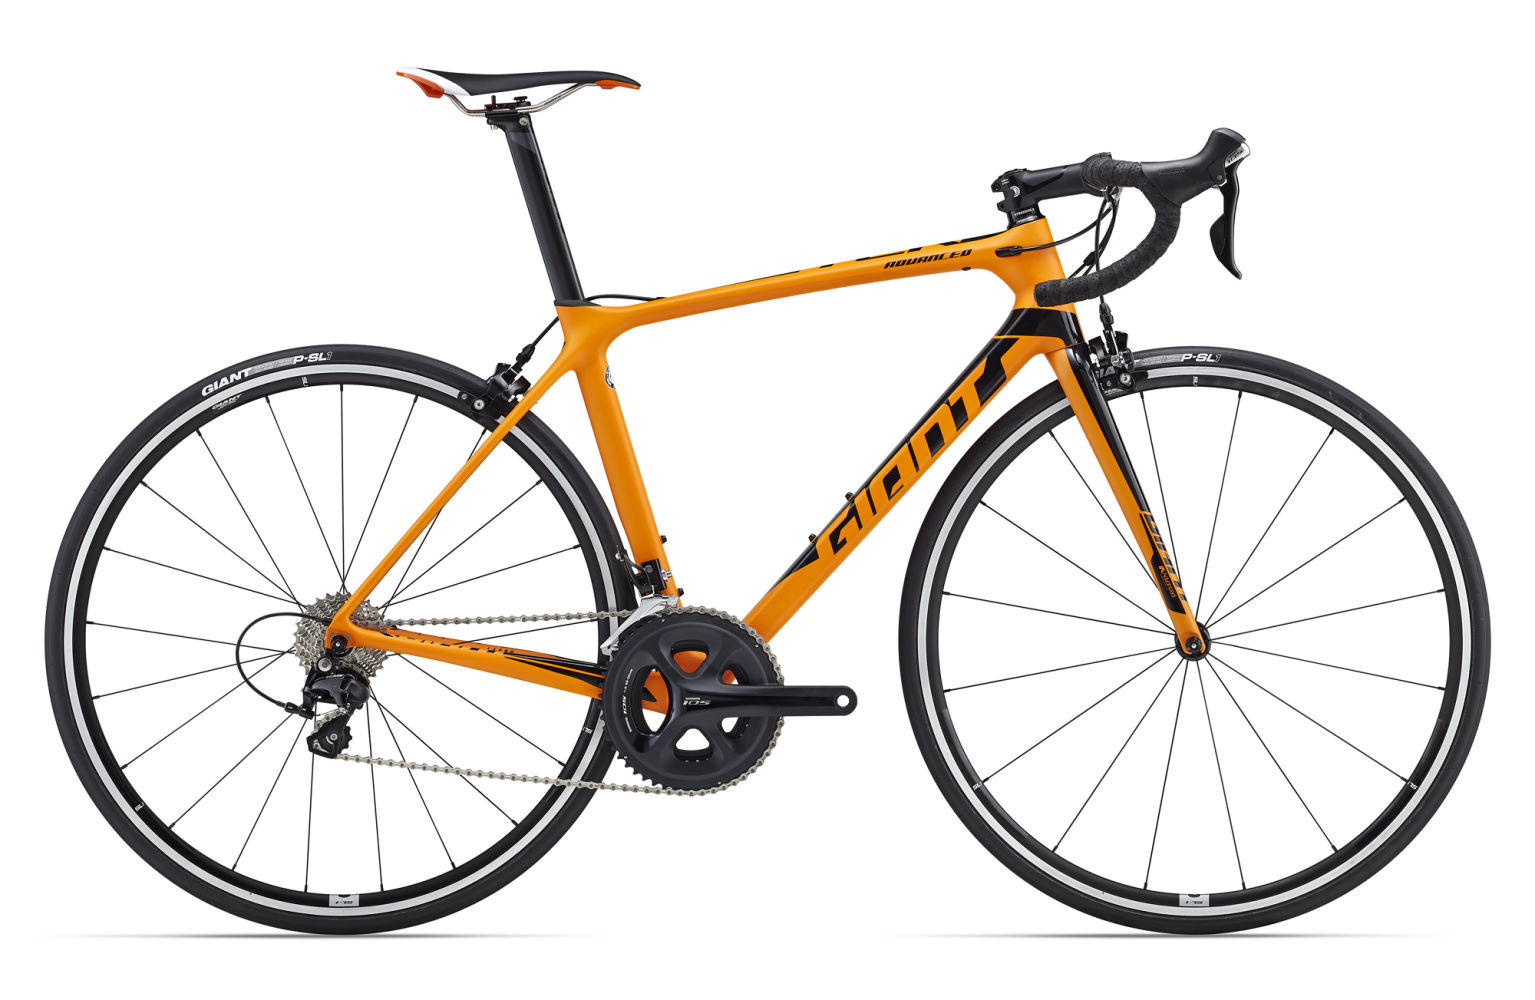 Tcr Advanced Pro 2016 Giant Bicycles South Africa